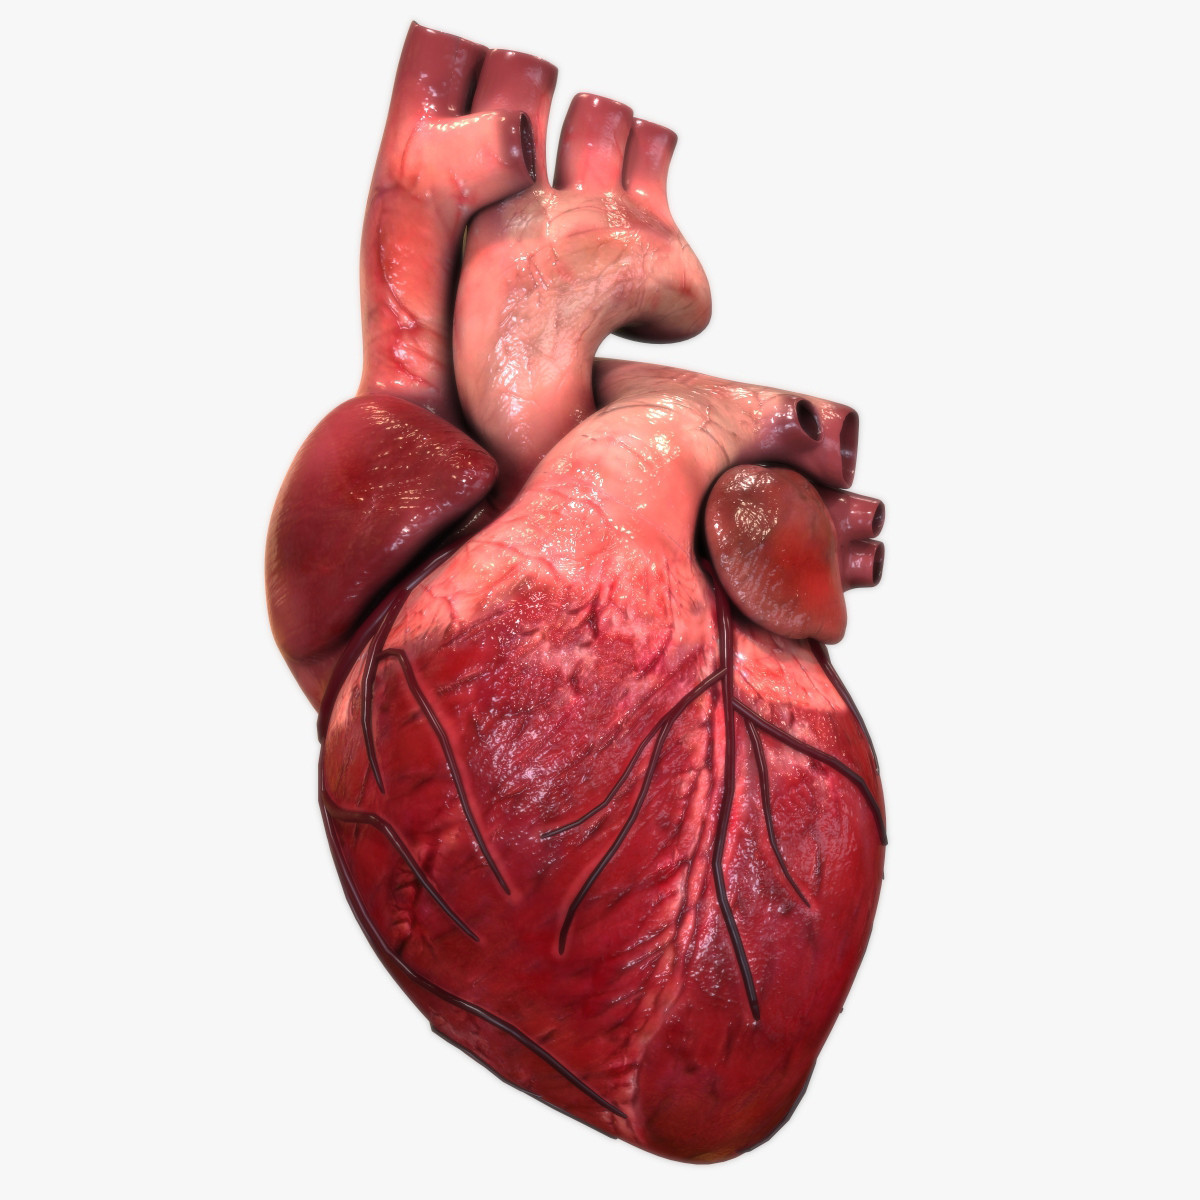 Real human heart images - photo#1